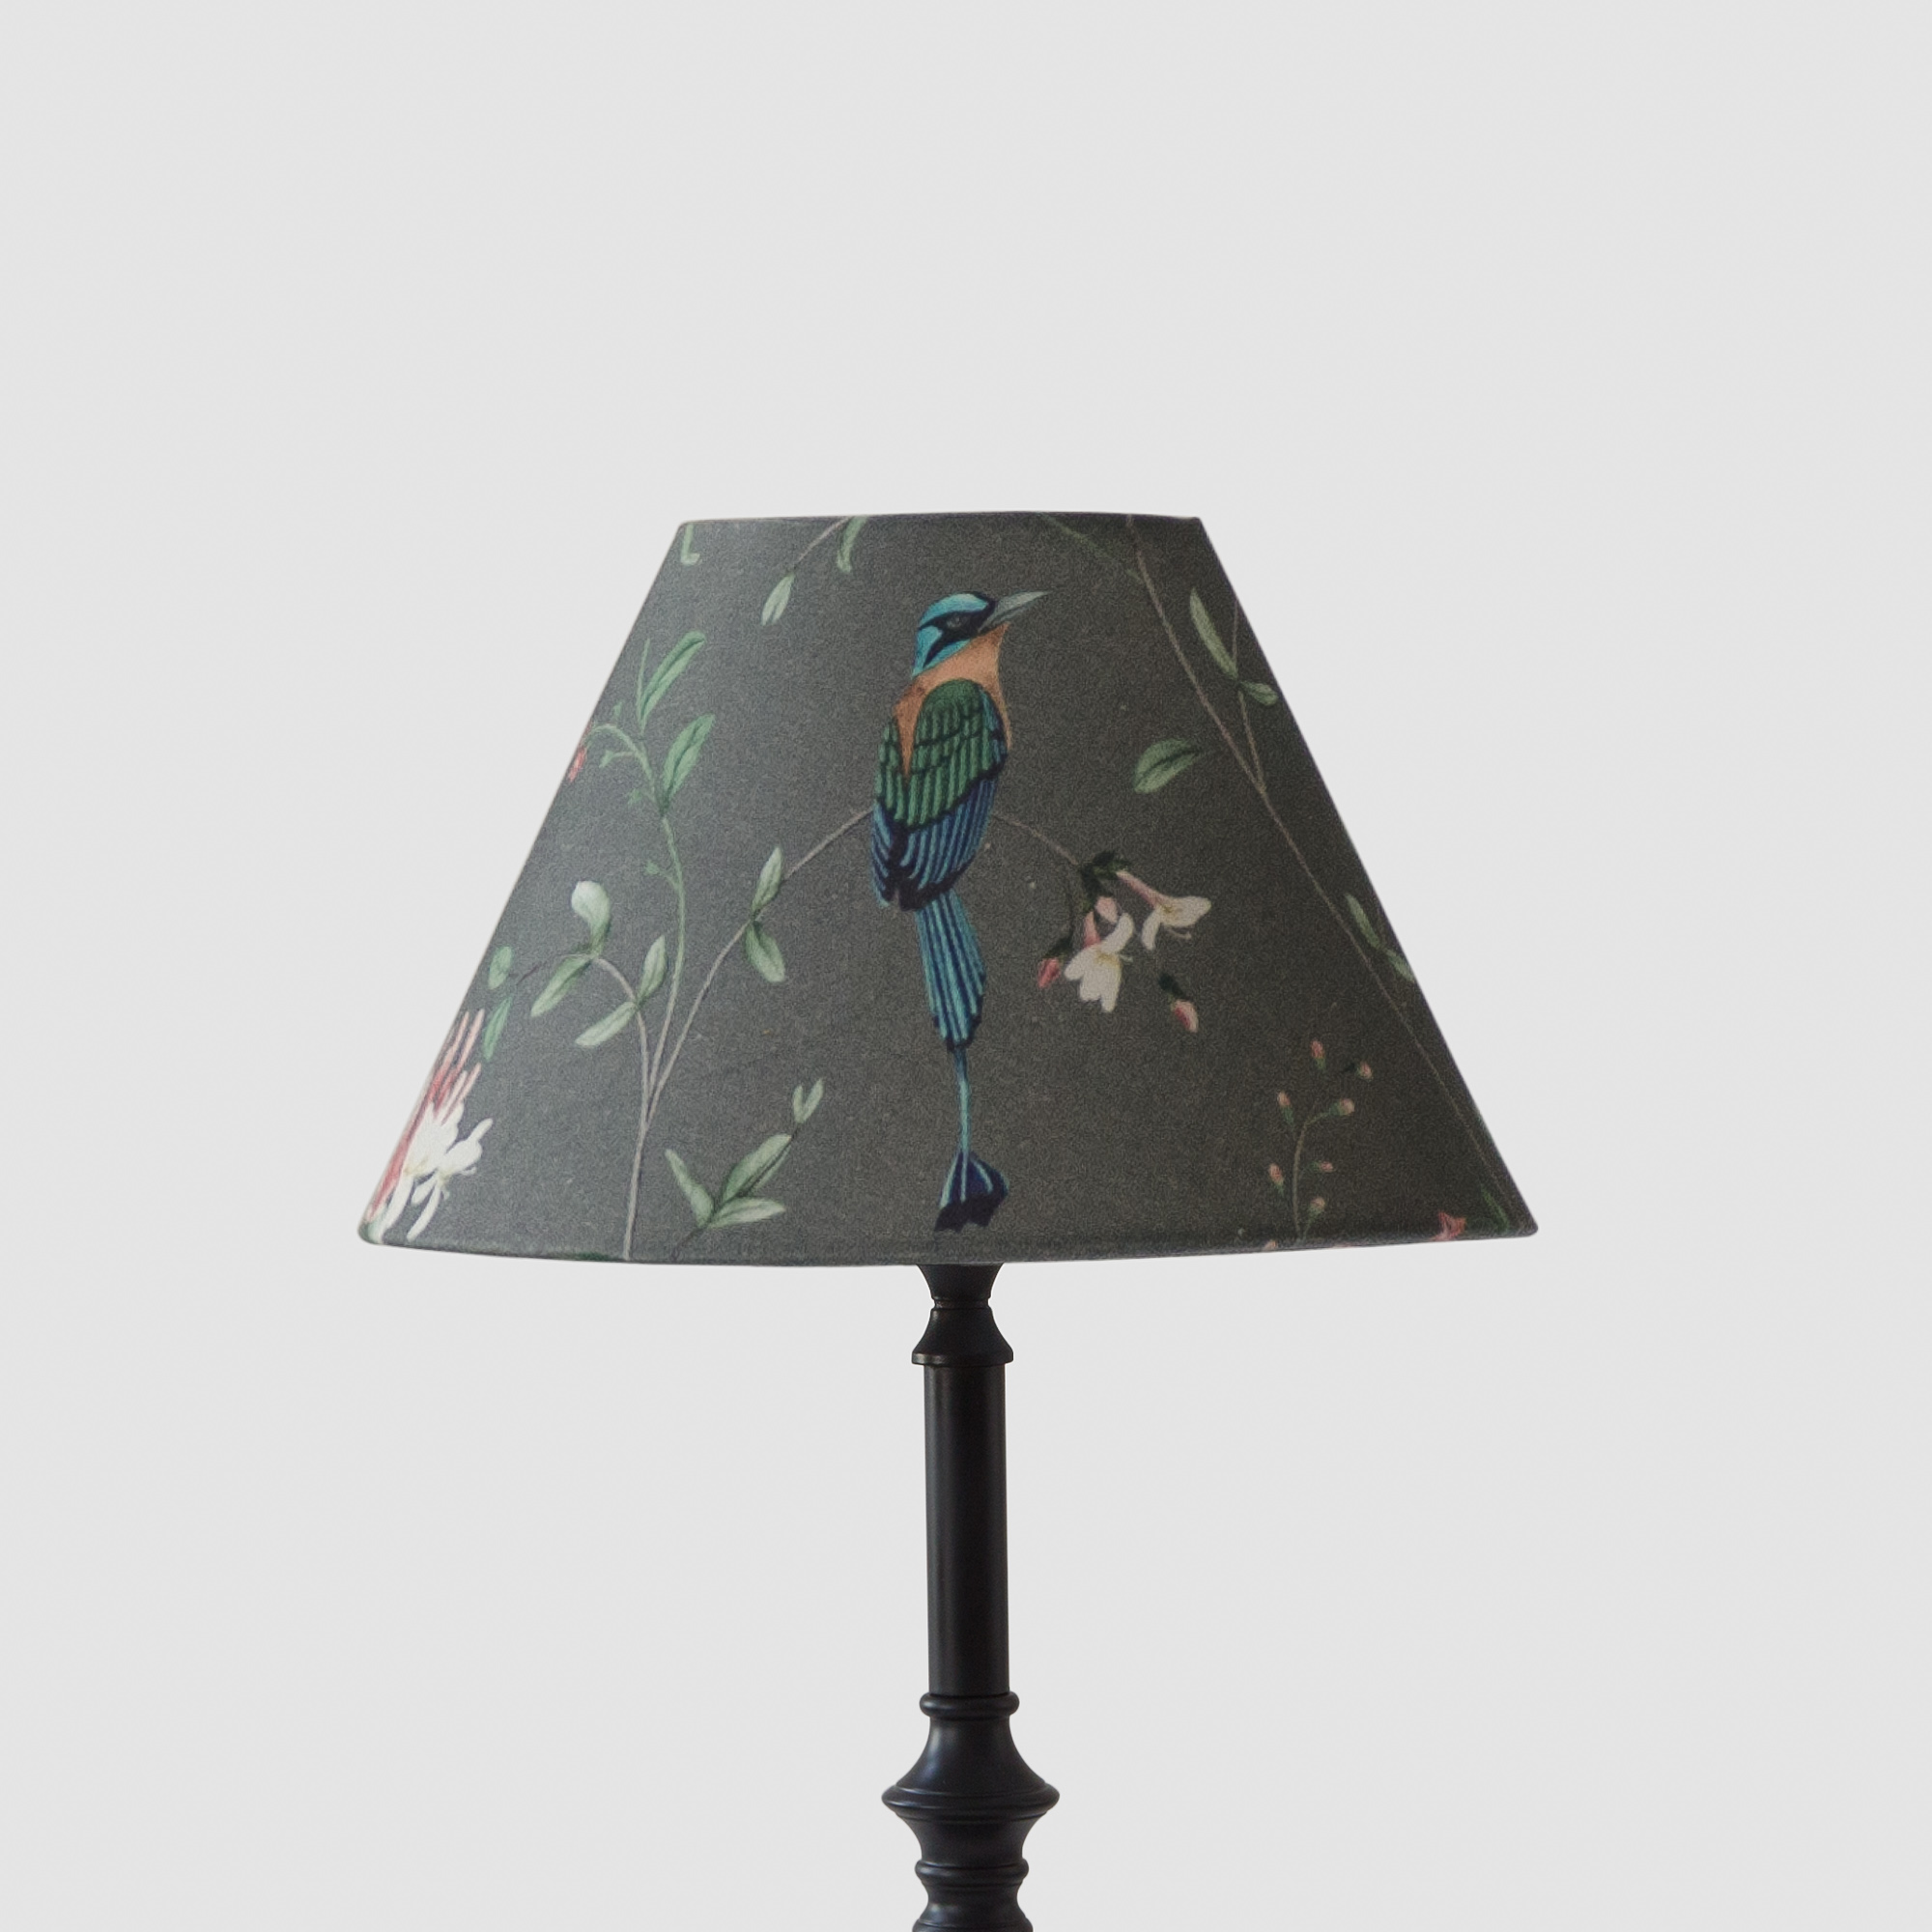 Cottage Bell Lampshade – Small – A Persian Garden Dusk